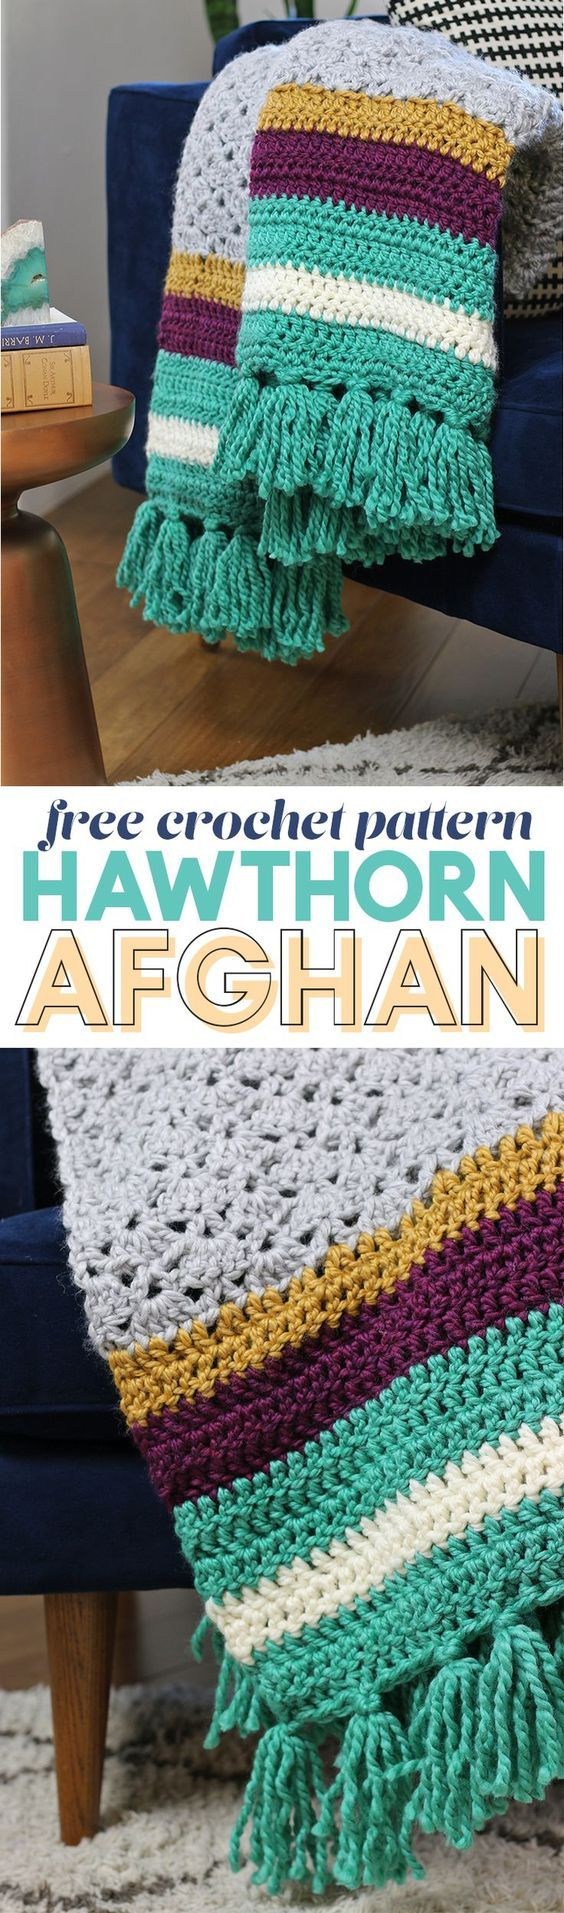 Best 25 crochet afghans ideas on pinterest crochet blanket the hawthorn afghan free crochet afghan pattern bankloansurffo Gallery